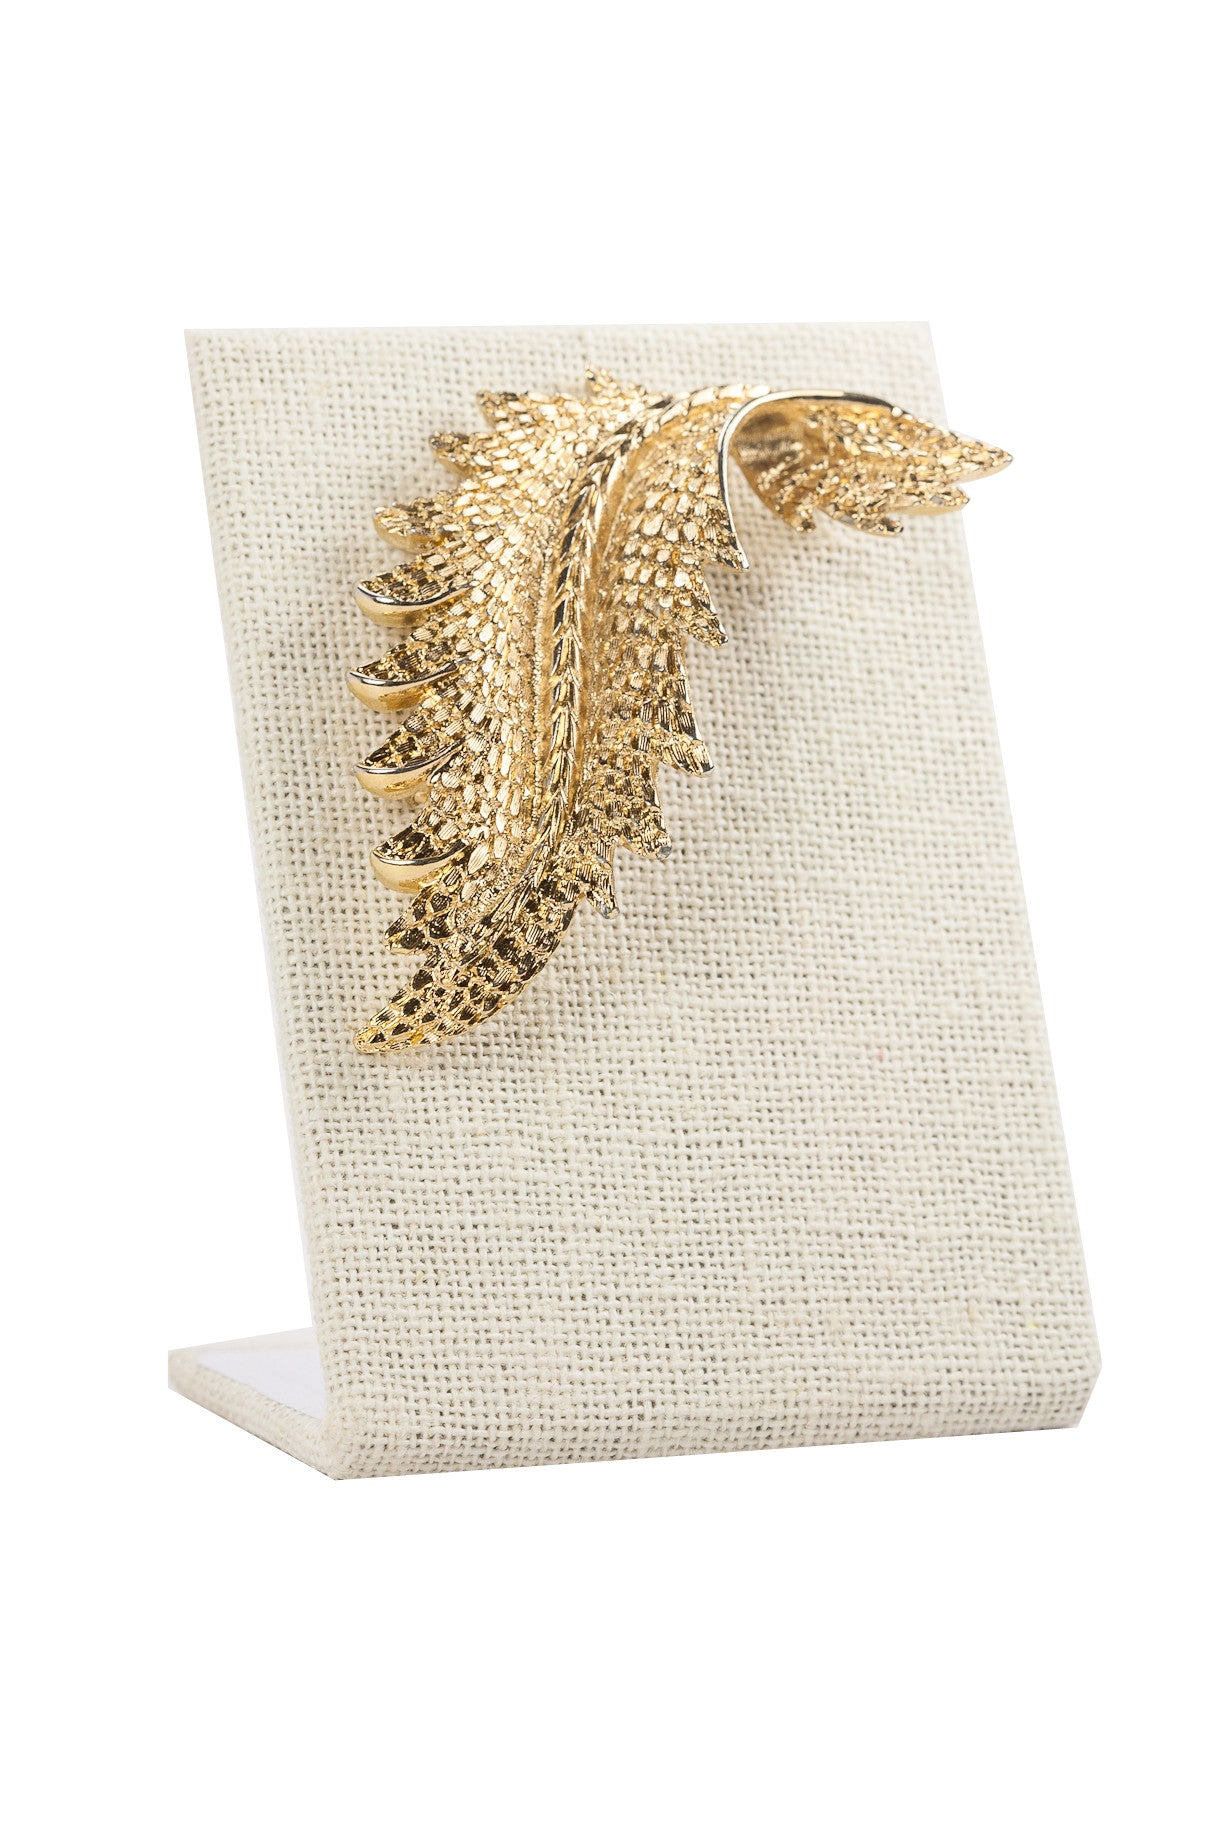 70's__Monet__Feather Brooch